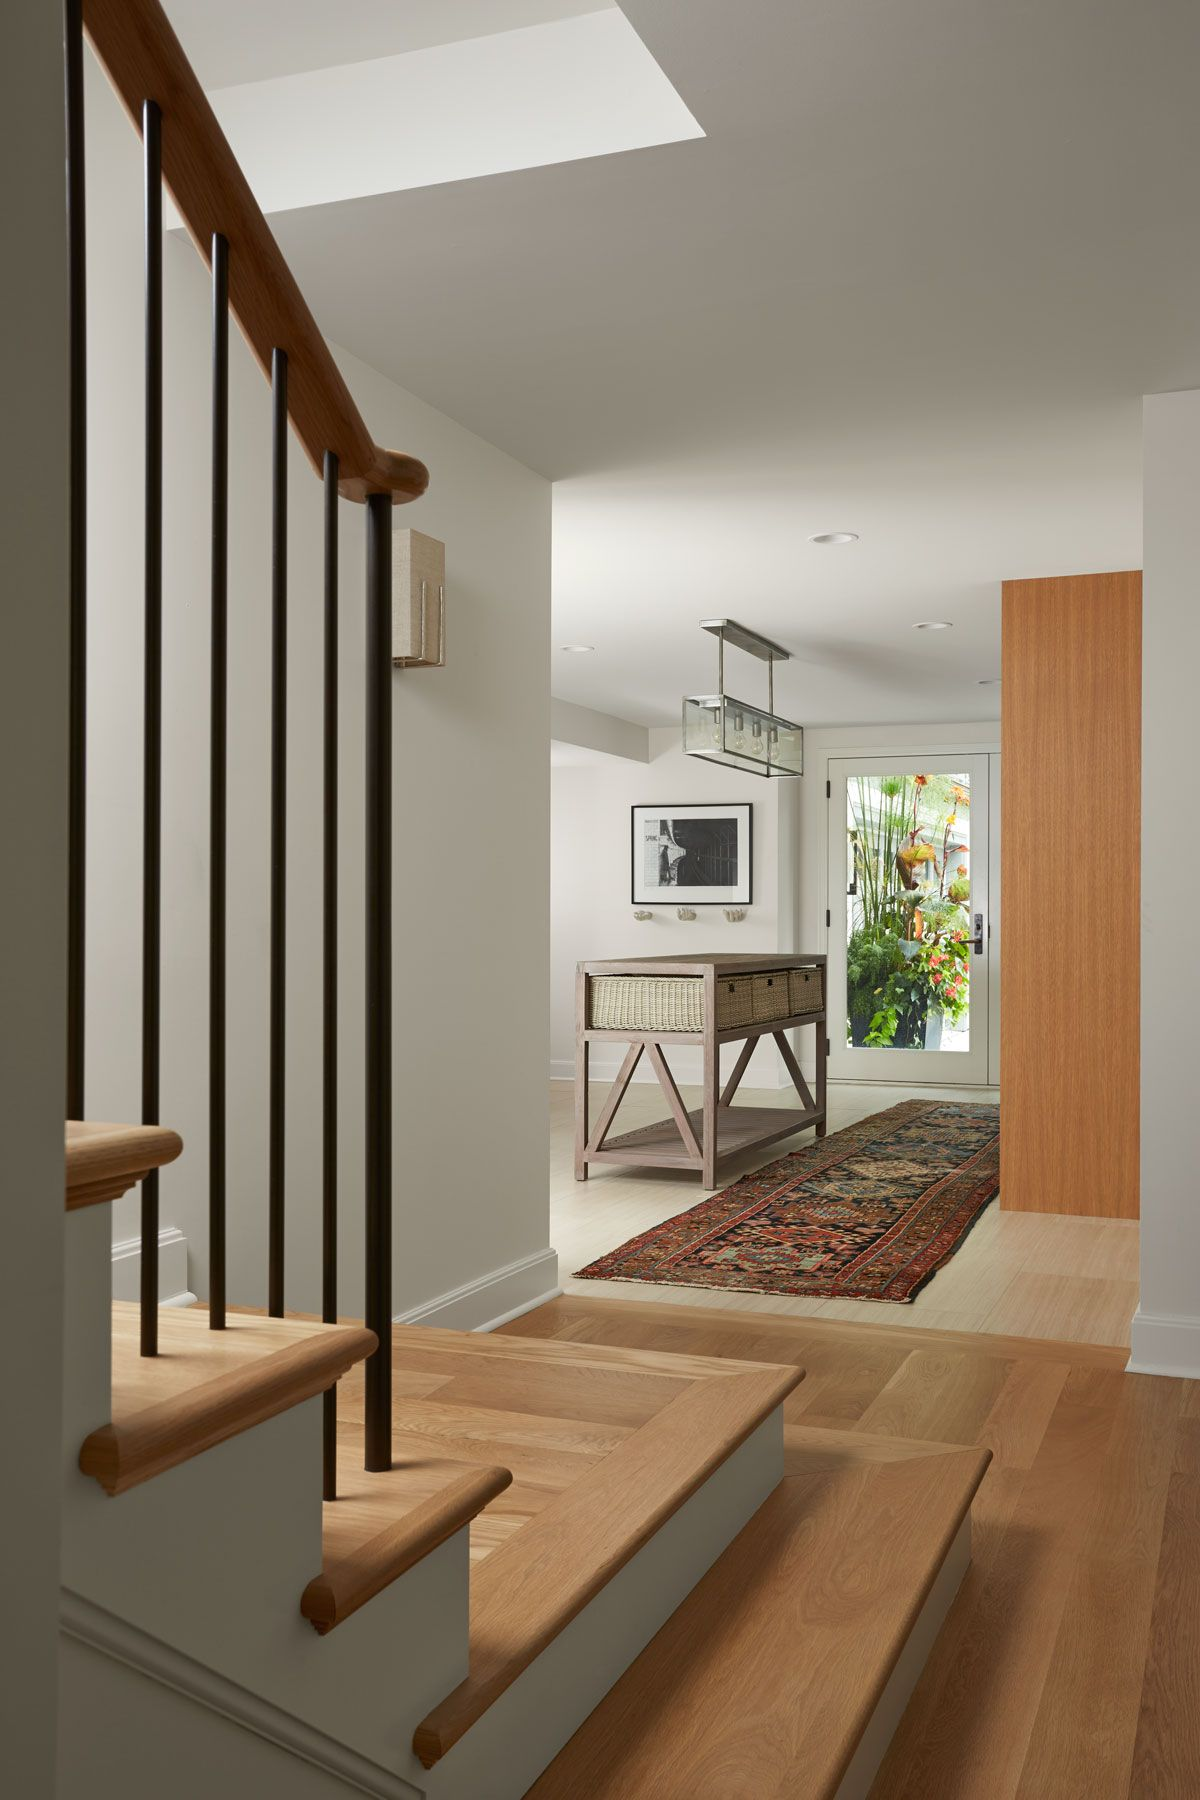 talla skogmo interior design portfolio interior designers minneapolis edina twin cities - Interior Designers In Minneapolis